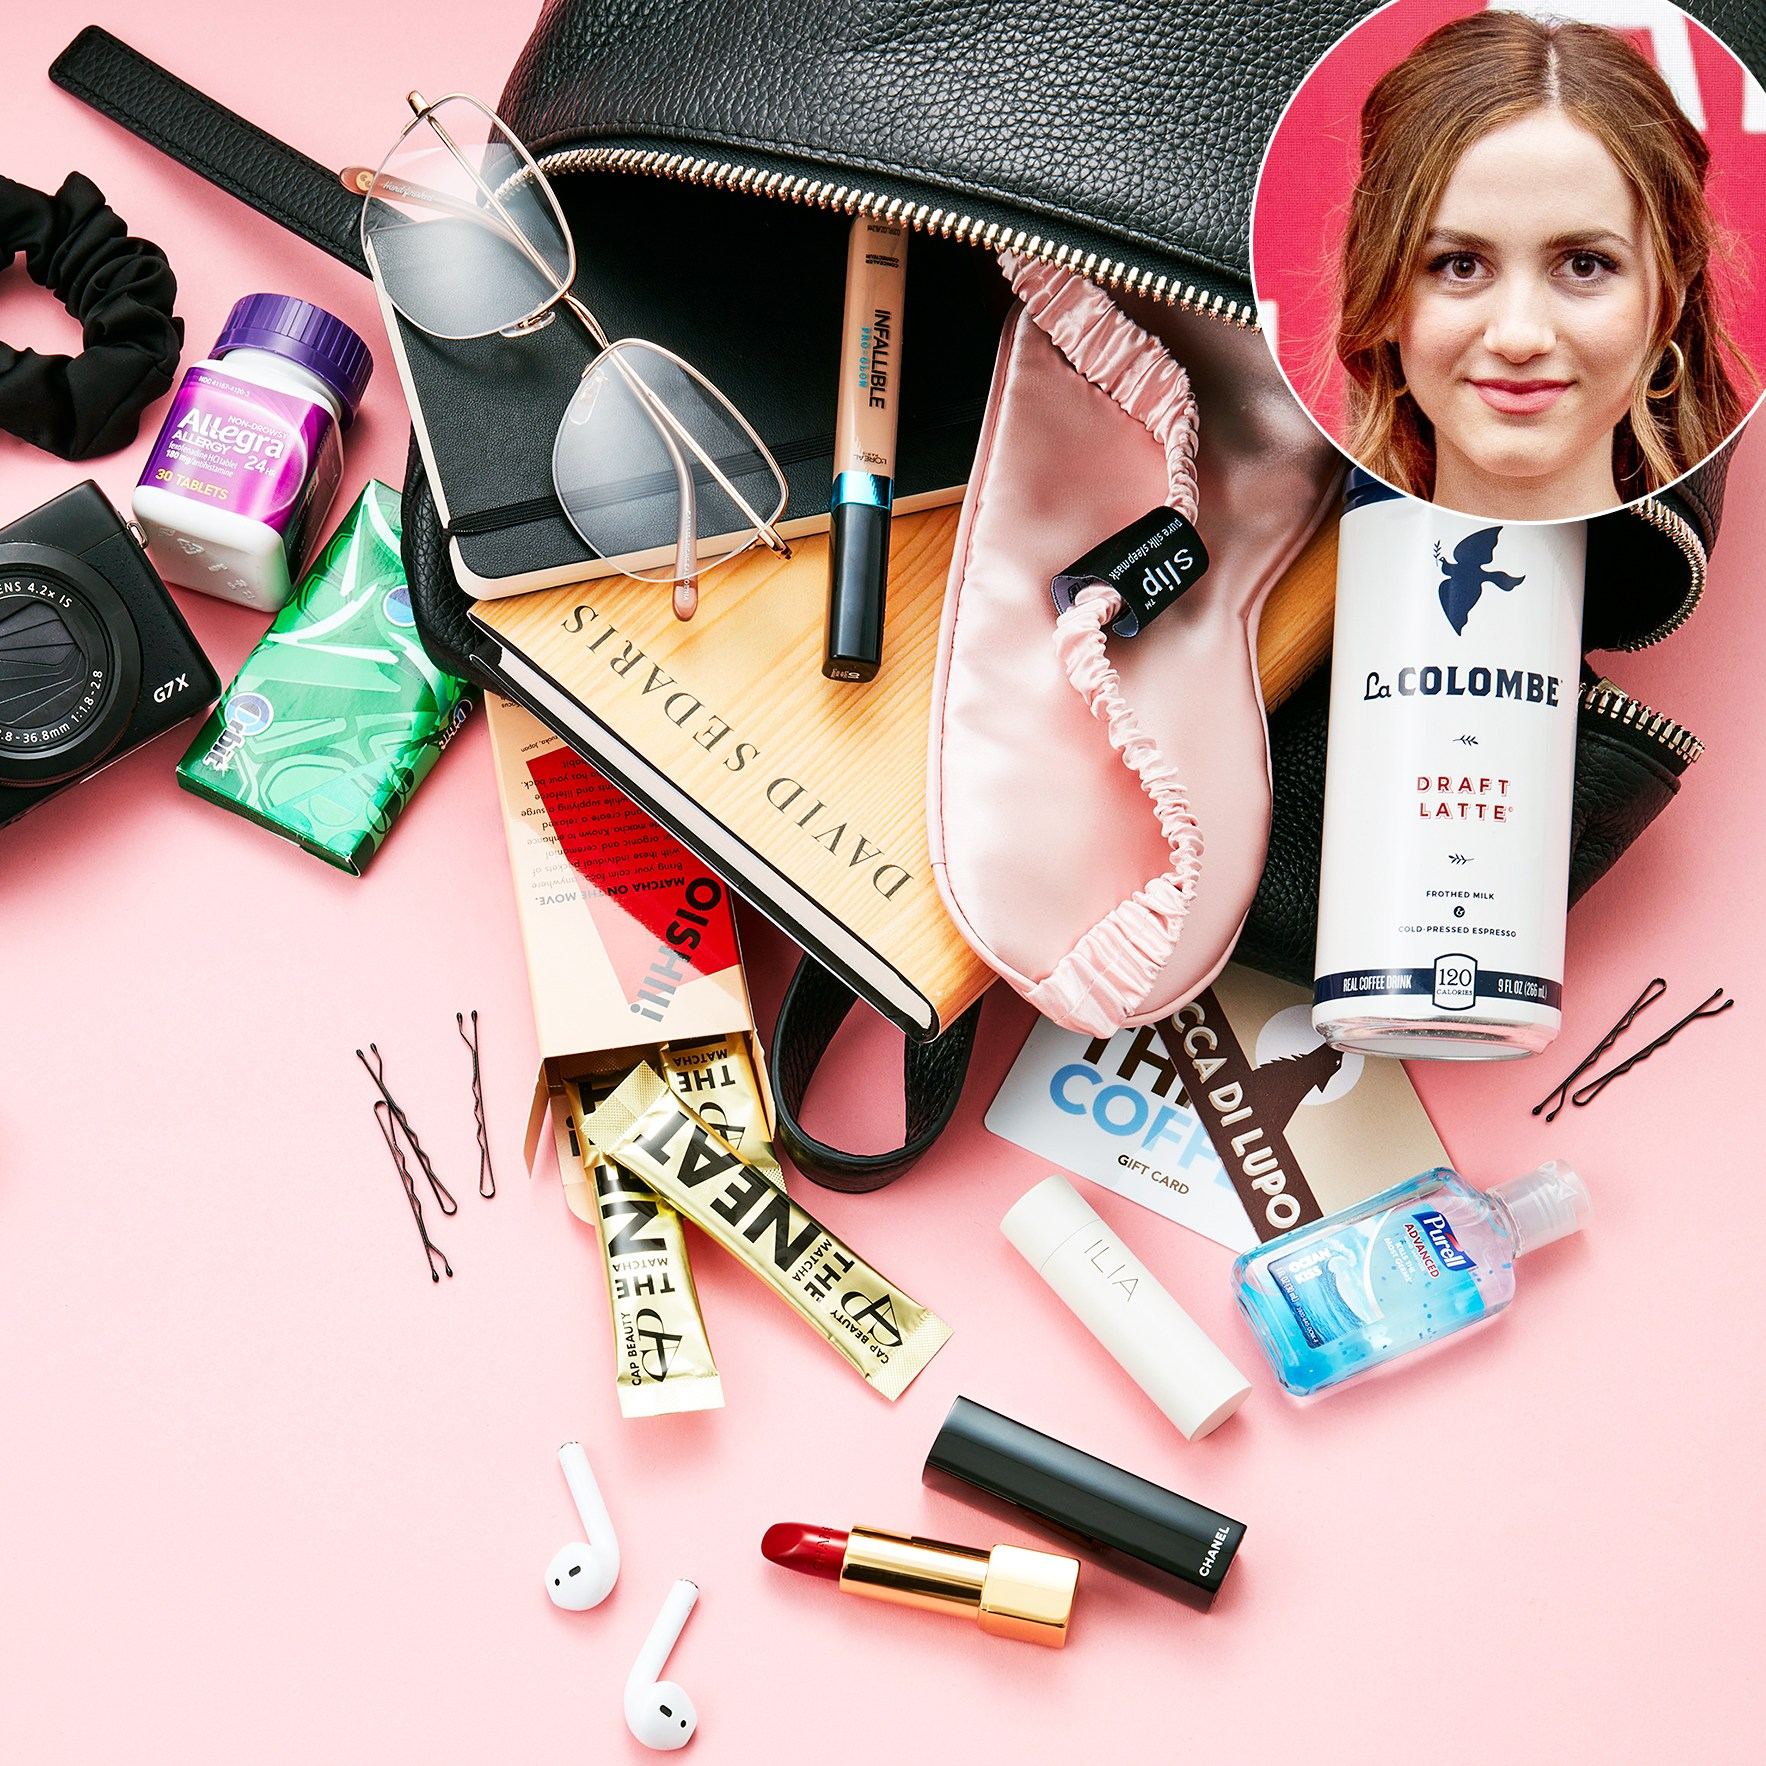 Maude Apatow What's In My Bag